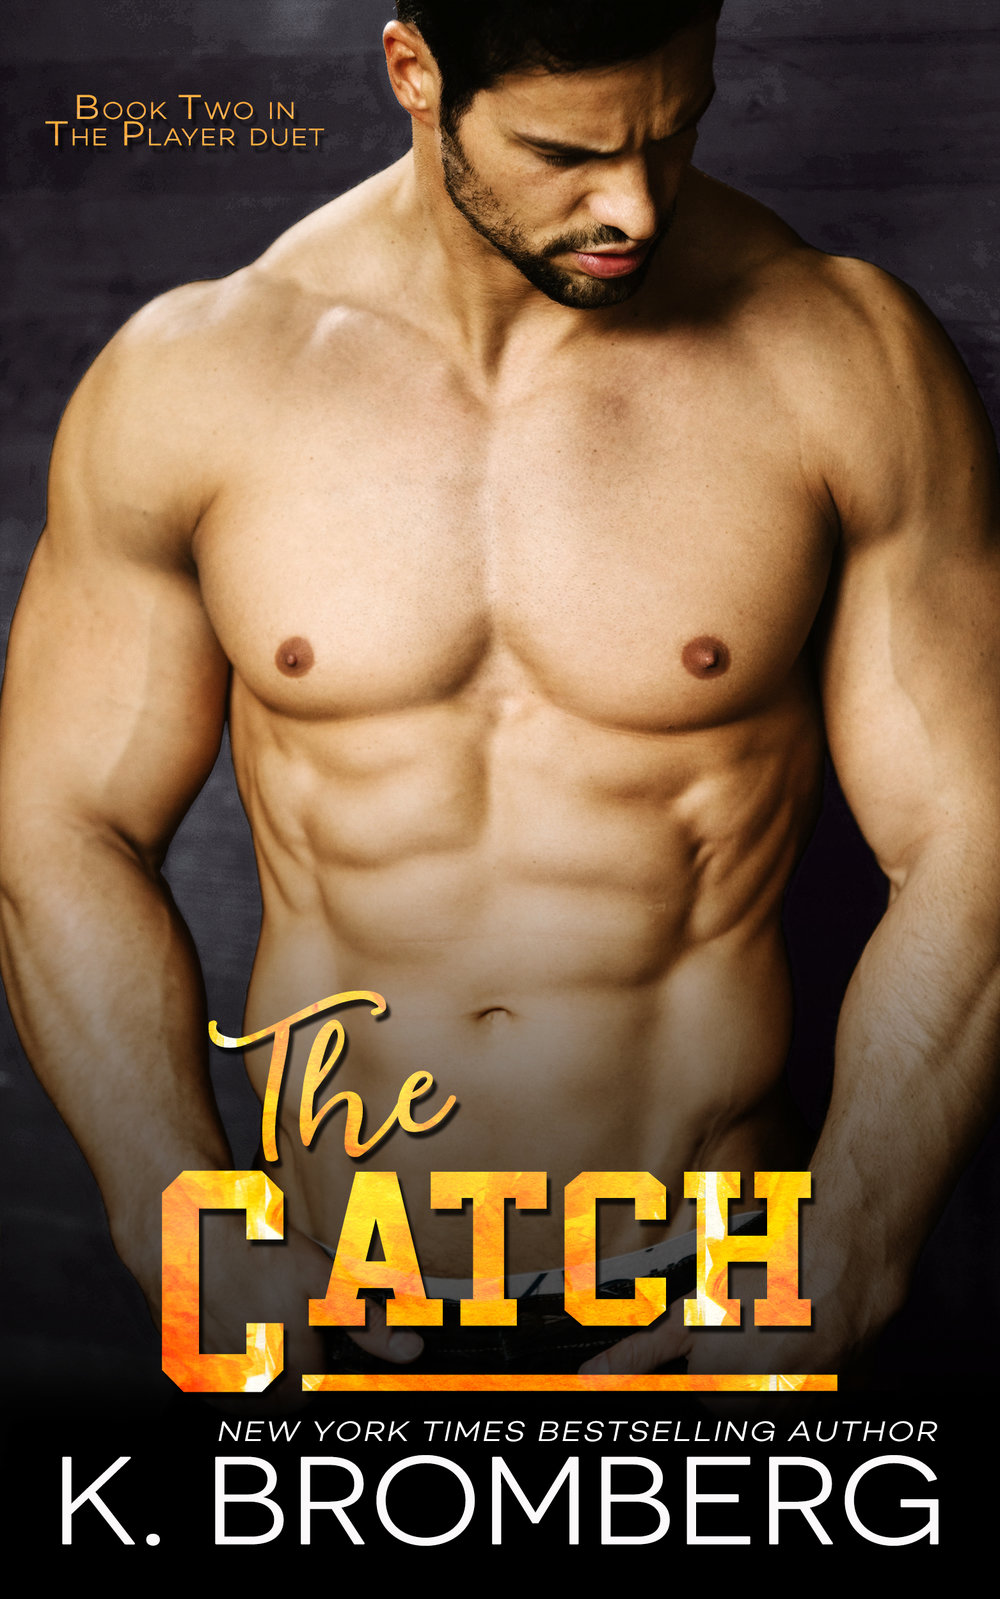 THE CATCH ~ By K.Bromberg After an unexpected twist of fate, All-Star catcher Easton Wylder is left questioning the loyalty of everyone around him. Even the woman who shares his bed, Scout Dalton. But if Easton thought being uprooted to the last place he expected was the only challenge life had to throw at him, he was dead wrong. With an ailing shoulder and his career in limbo, his decision to make an unexpected change leads him to question everything – Scout's love, family loyalties, and whether he can conquer the one obstacle he's never been able to overcome. The secret he's never shared with anyone. He may be a man pushed to his limits, but he's hell-bent on proving his worth no matter the cost. Amazon ~ iBooks ~ B&N ~ Kobo ~ Paperback GOODREADS